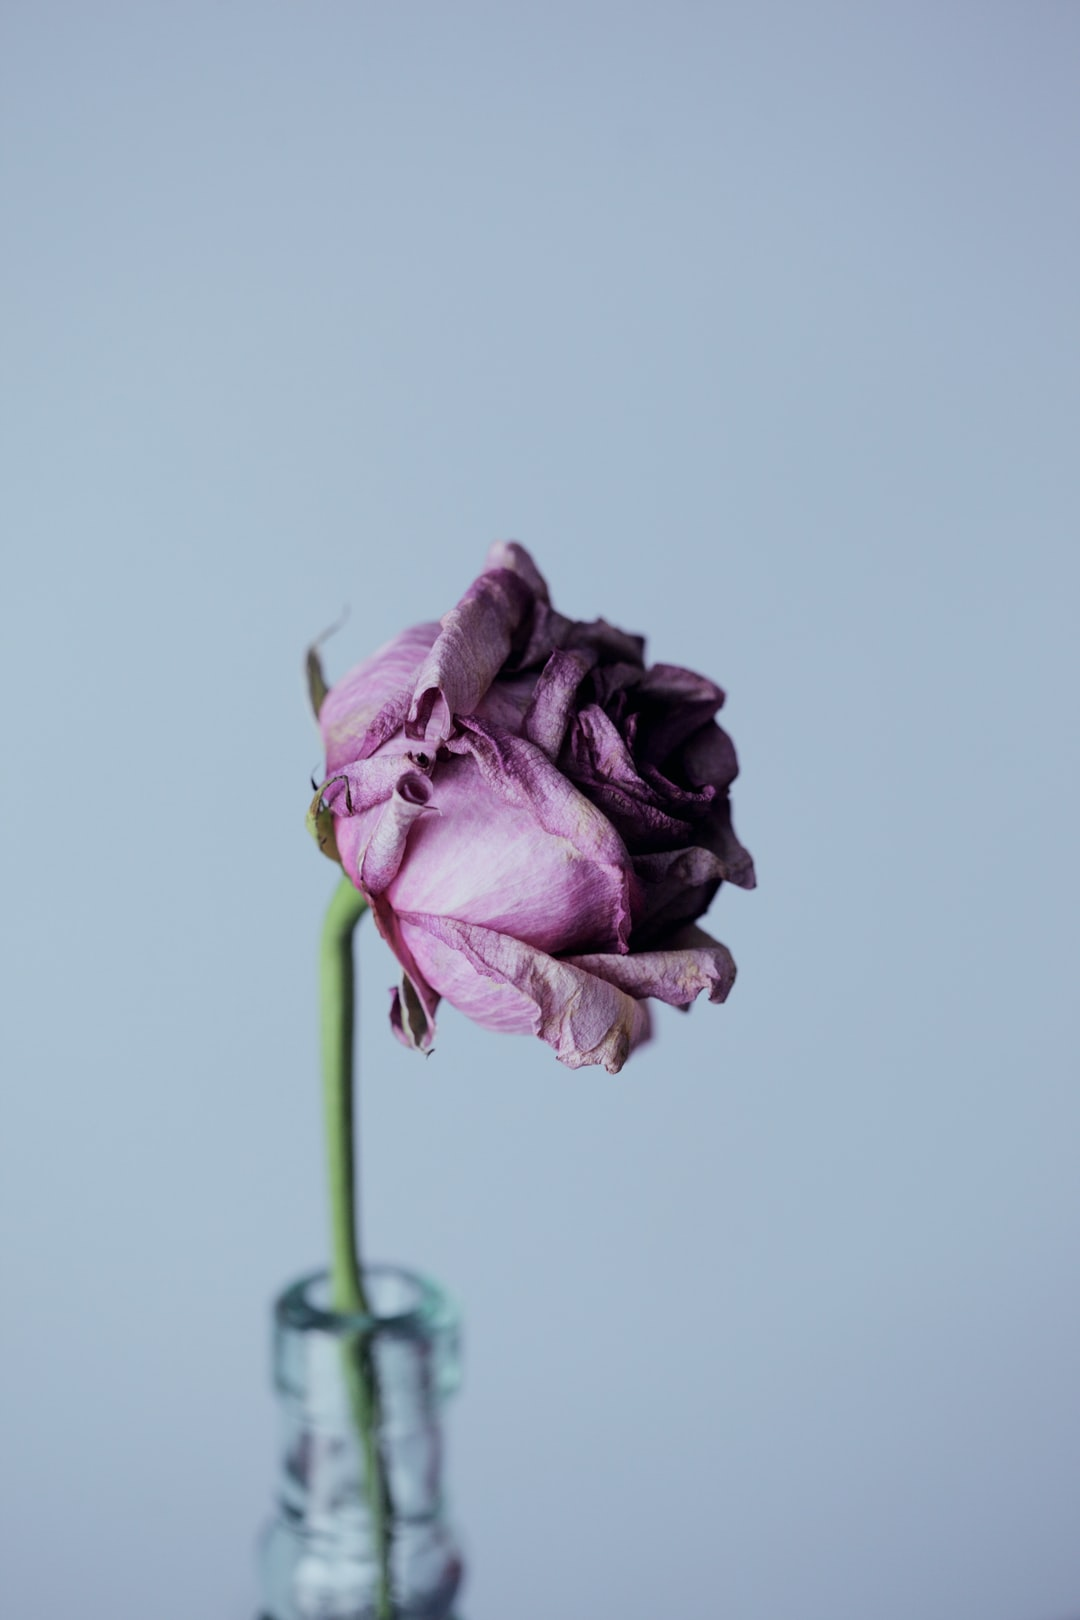 Portrait of a lovely dying rose from Valentine's Day.